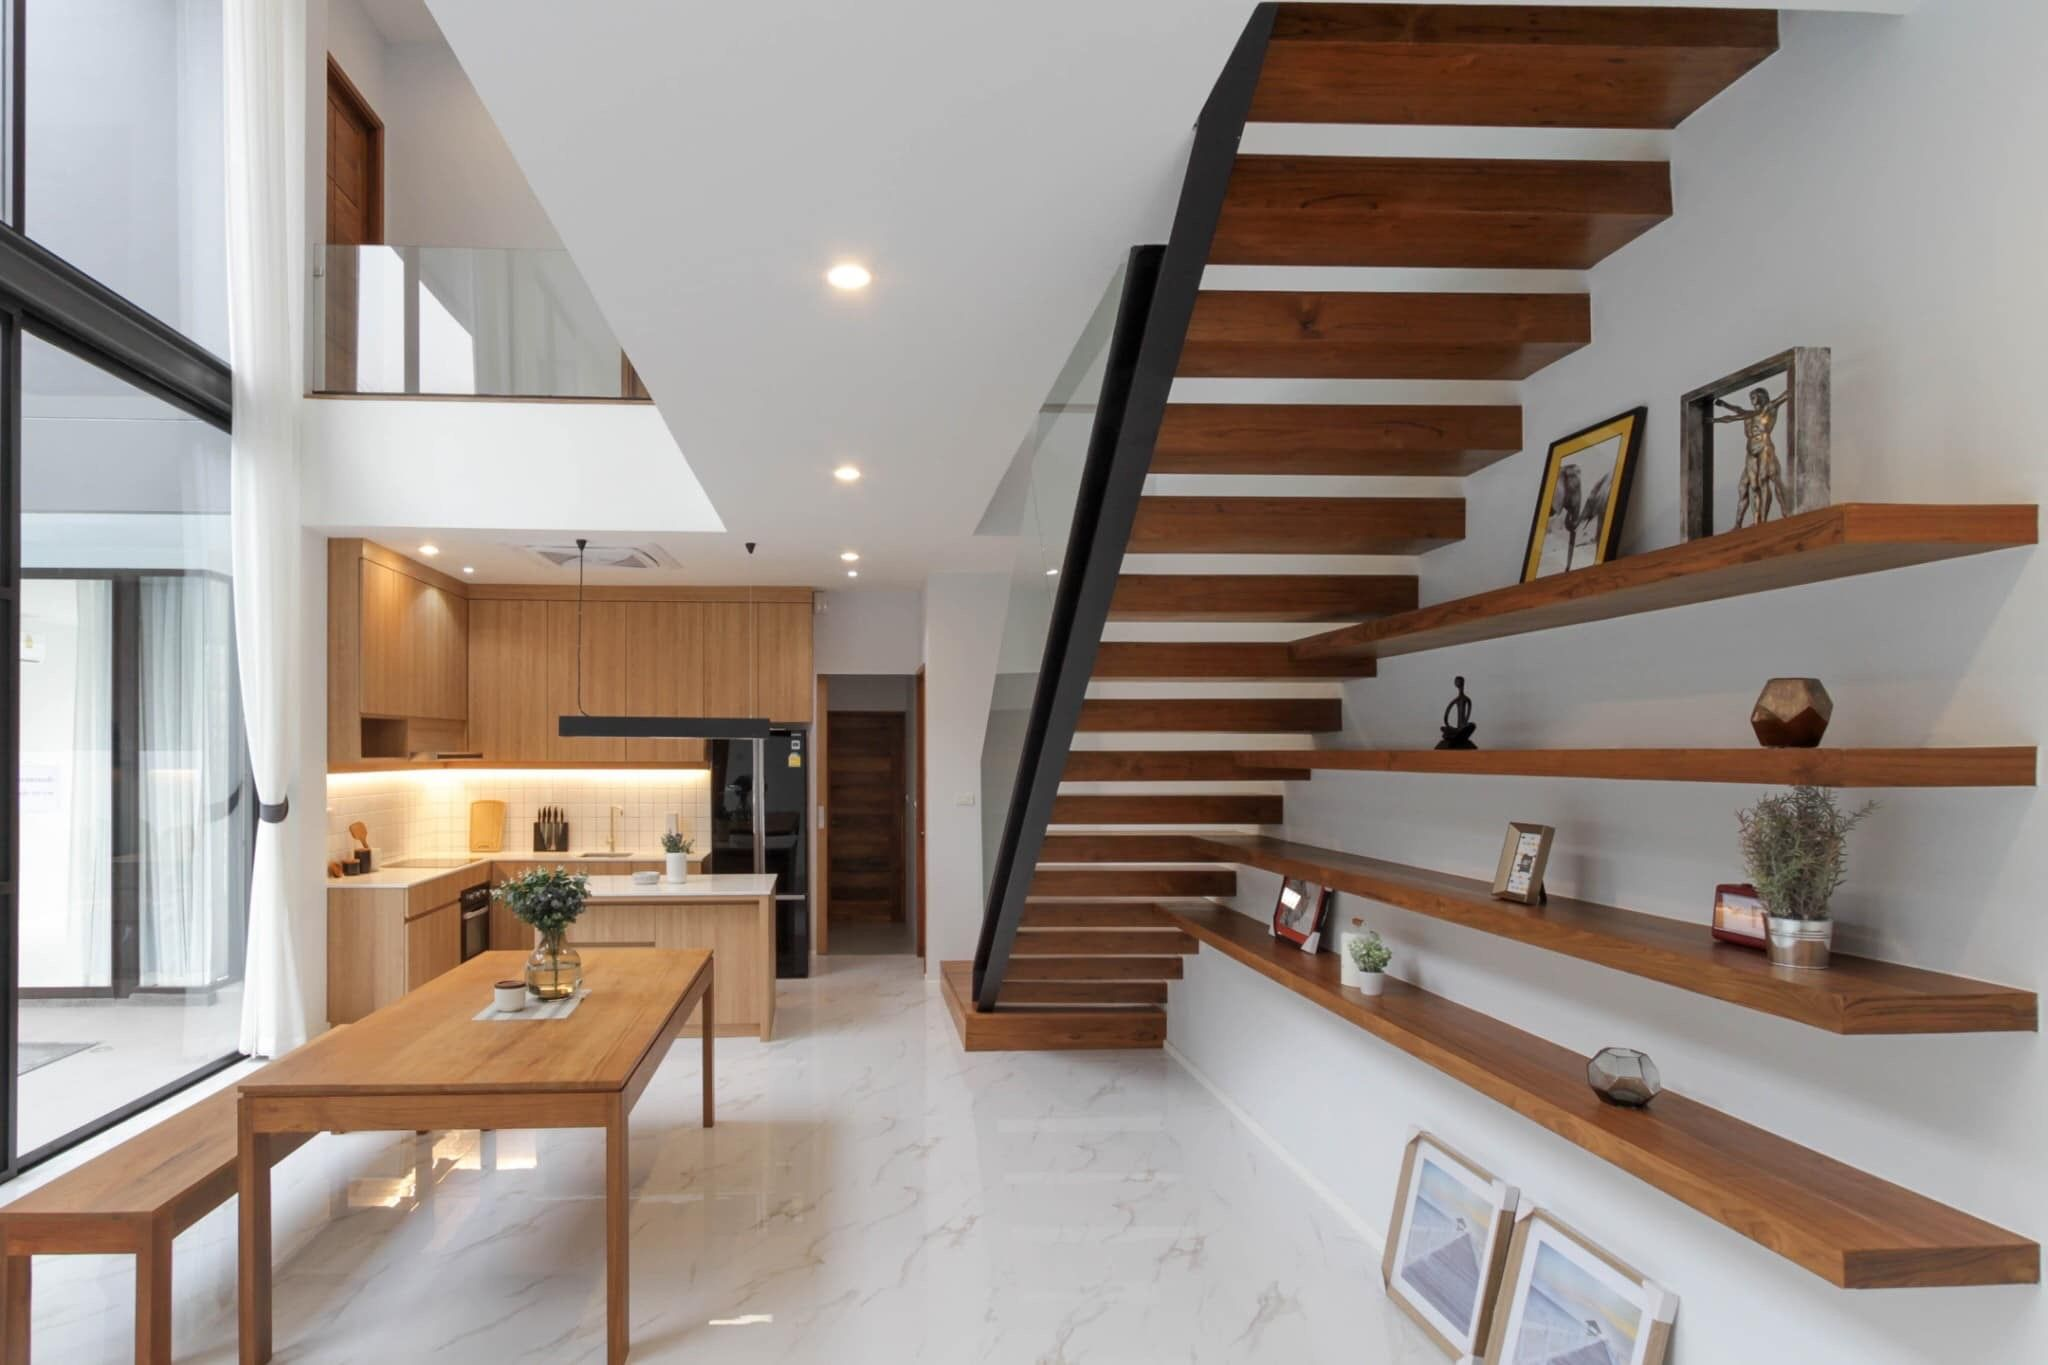 Double Story House Open Interior With Wood Staircase House Design